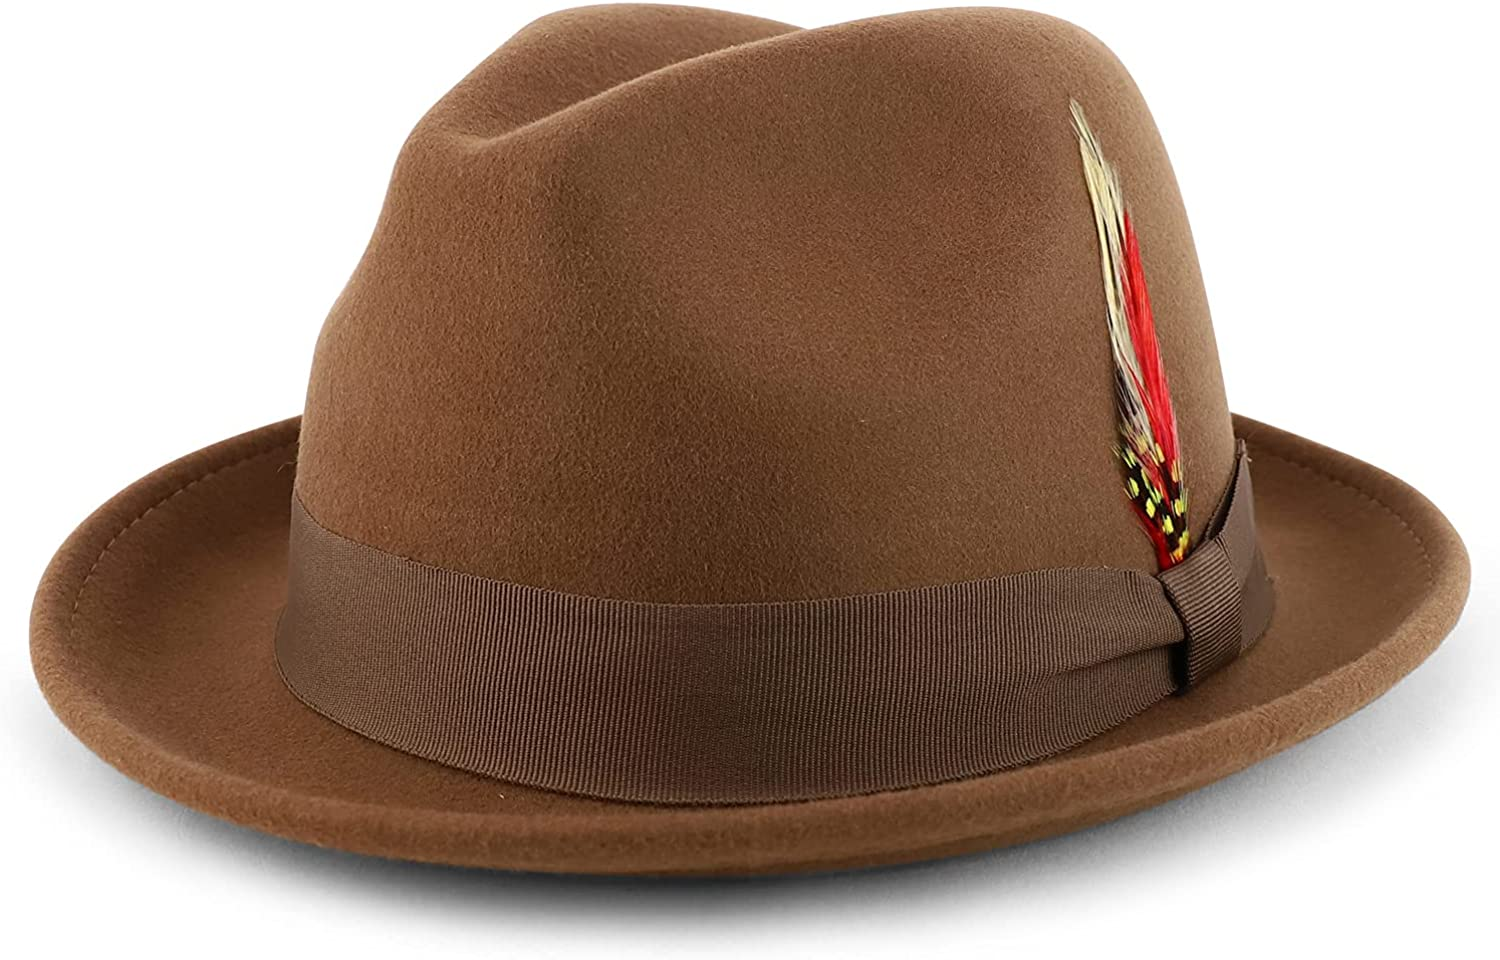 Armycrew Classic 100% Wool Felt Fedora Feather Fits Upto with Max 78% OFF Jacksonville Mall 2X